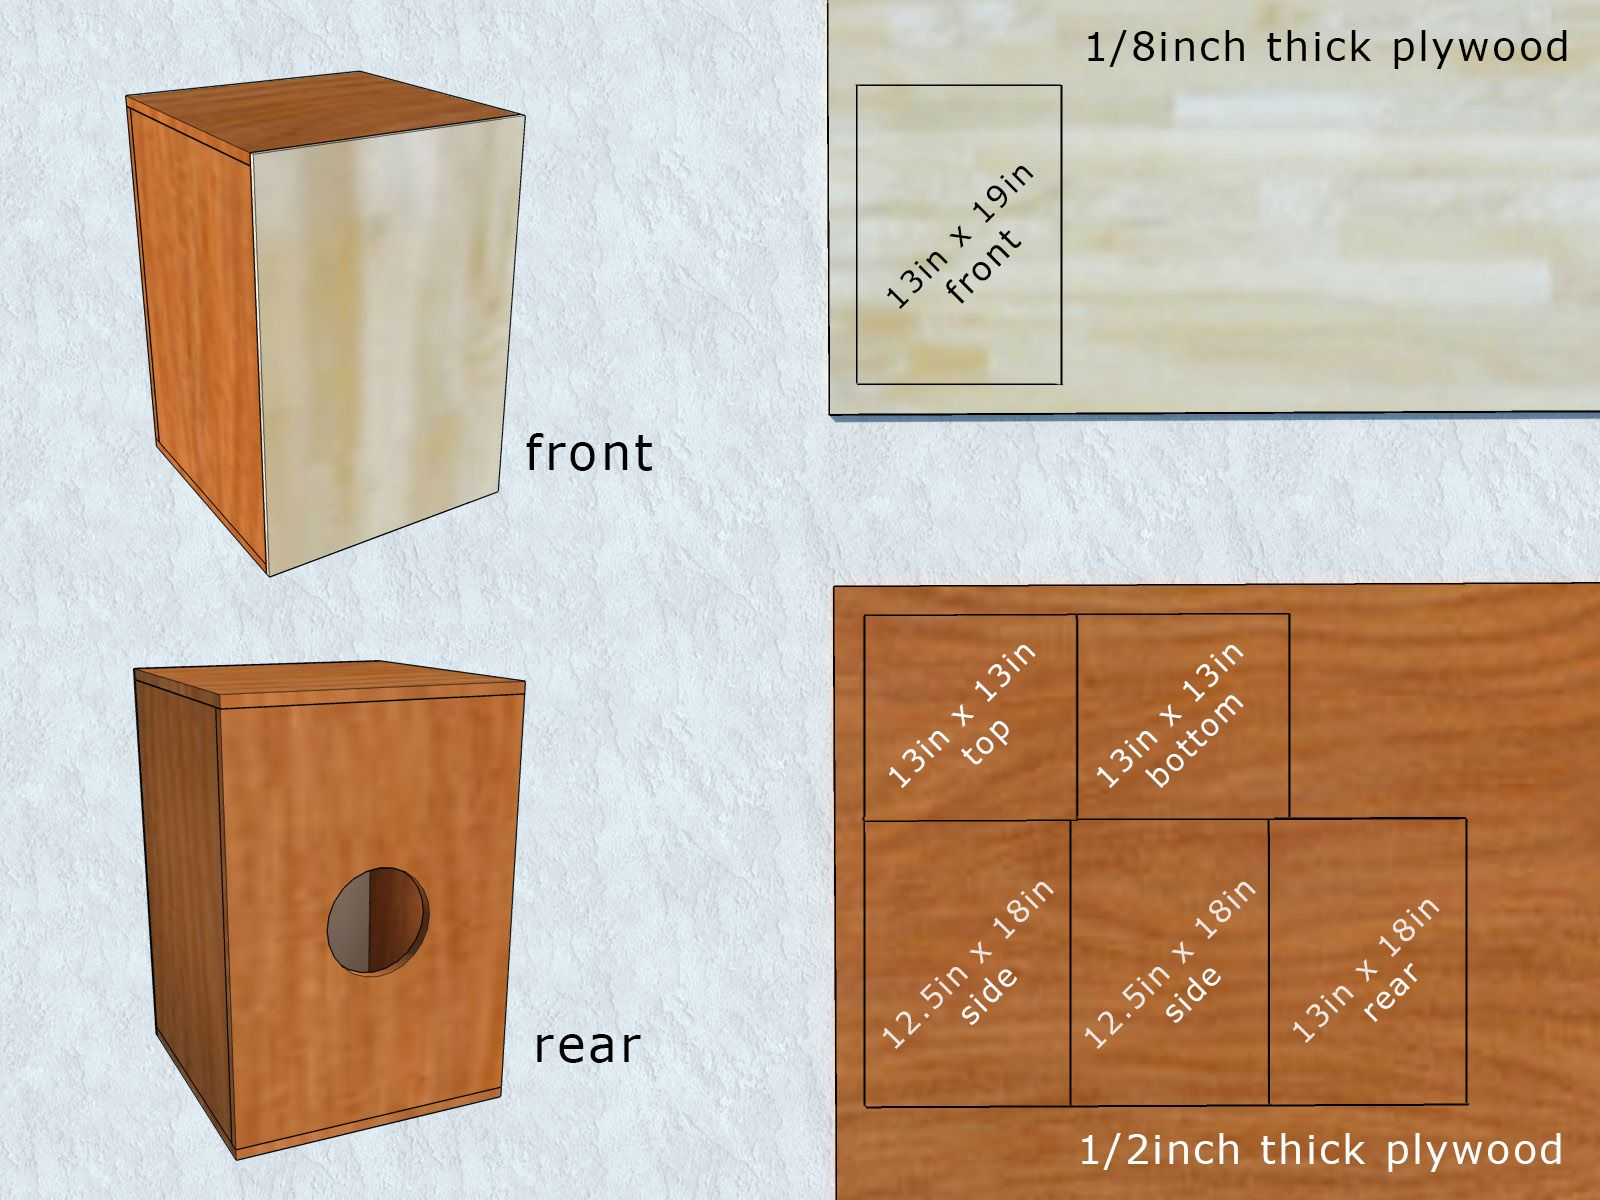 How To Build A Cajon Diy Instruments Projects Cajon Drum Diy Diy Musical Instruments